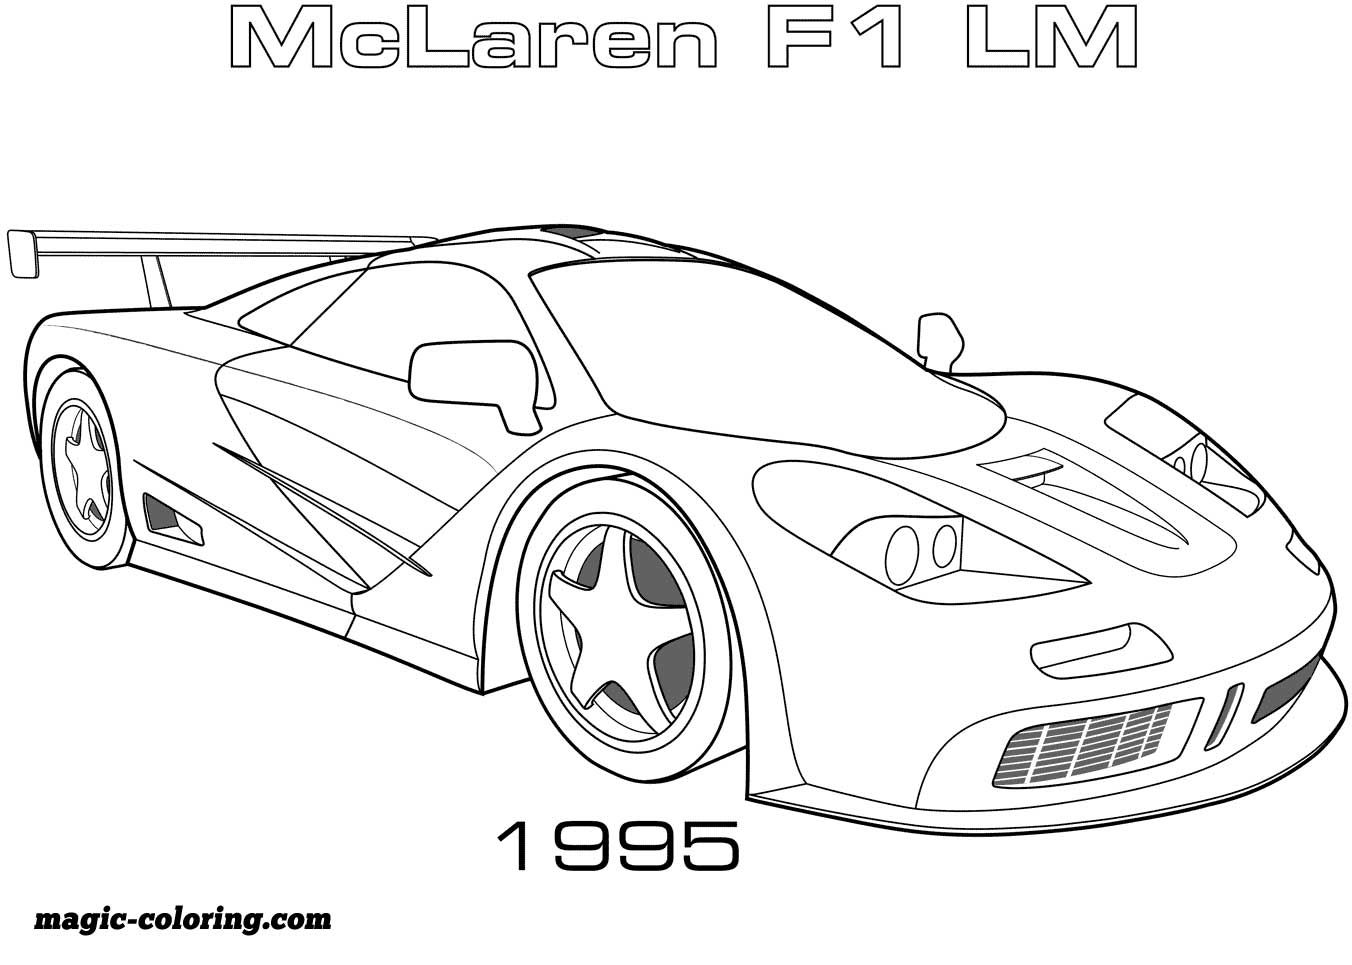 Transportation coloring pages Race car coloring pages